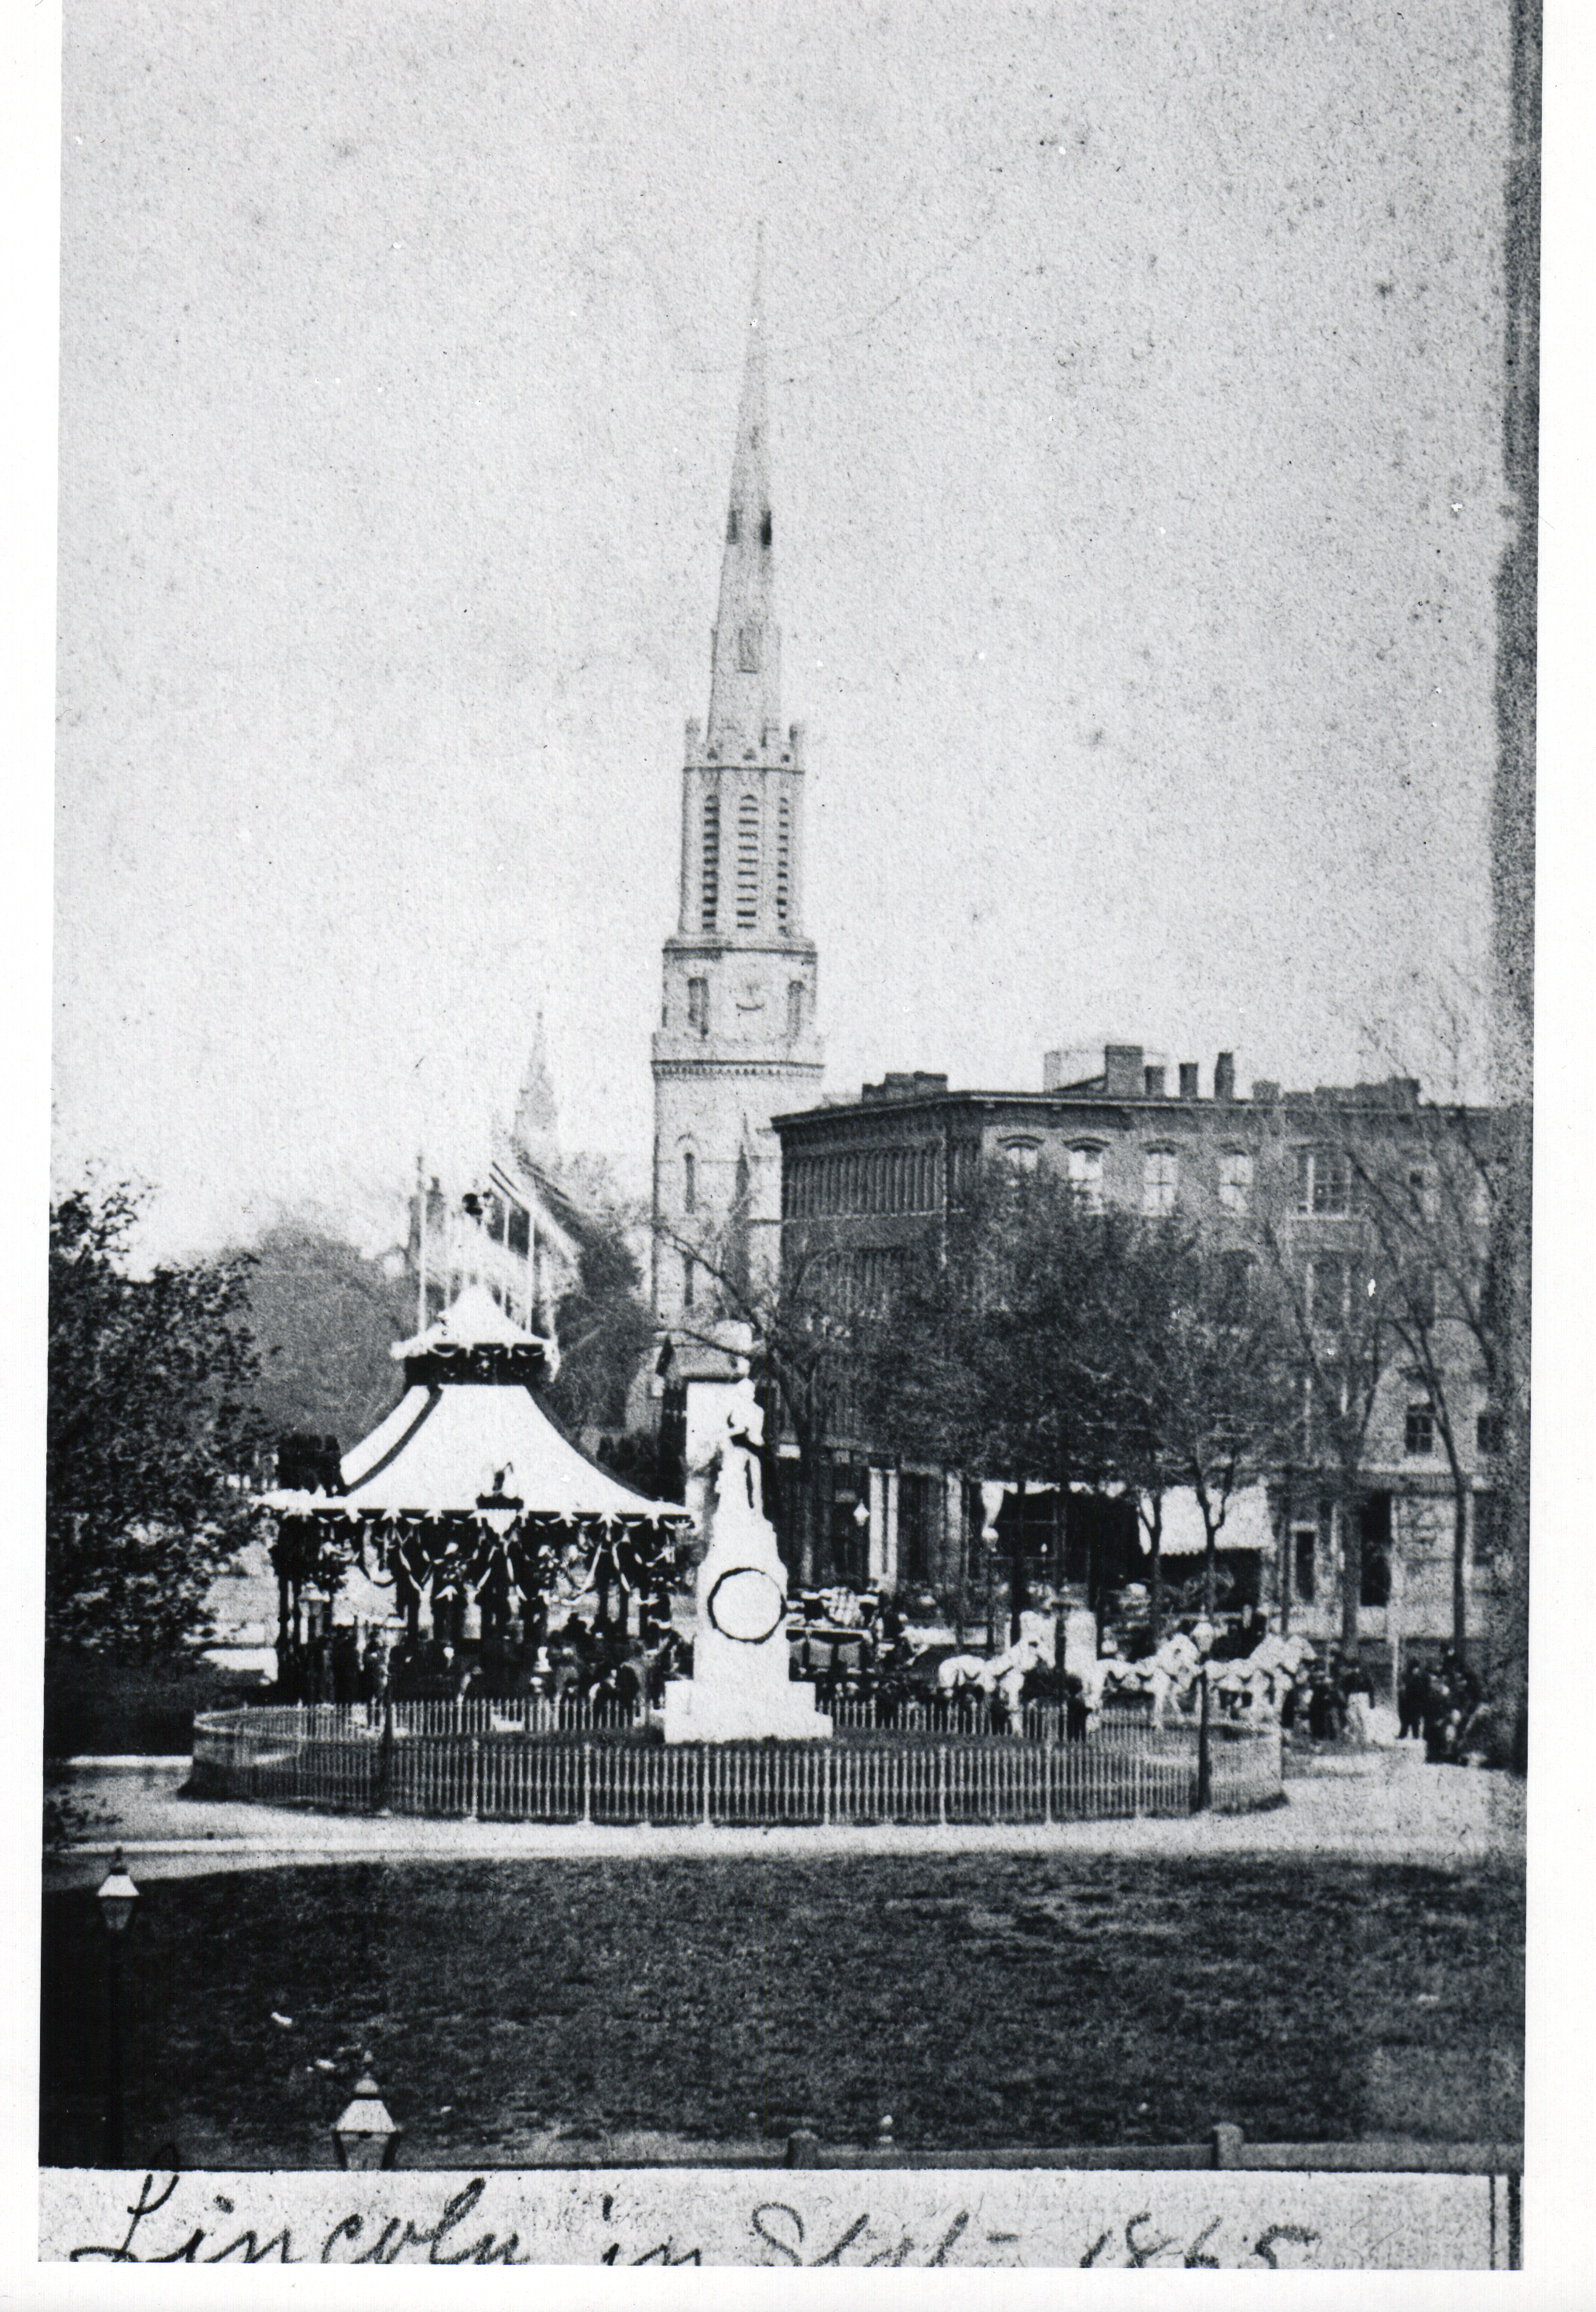 Lincoln's catafalque on Public Square, Cleveland, Ohio with monument statue of Oliver Hazard Perry in foreground April 28, 1865